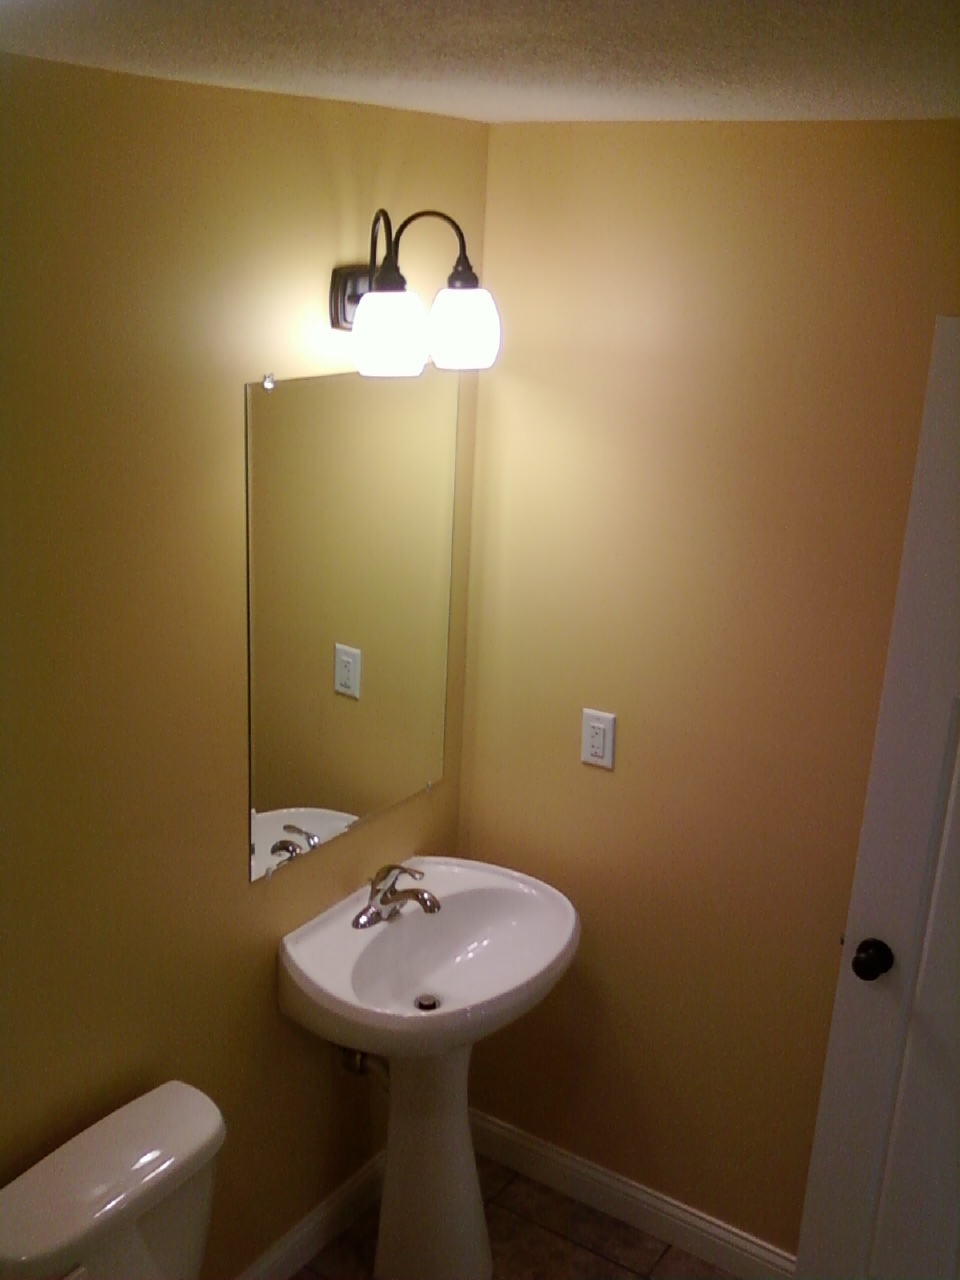 Johannes vannoy carpentry services finished basement for New bathroom installation